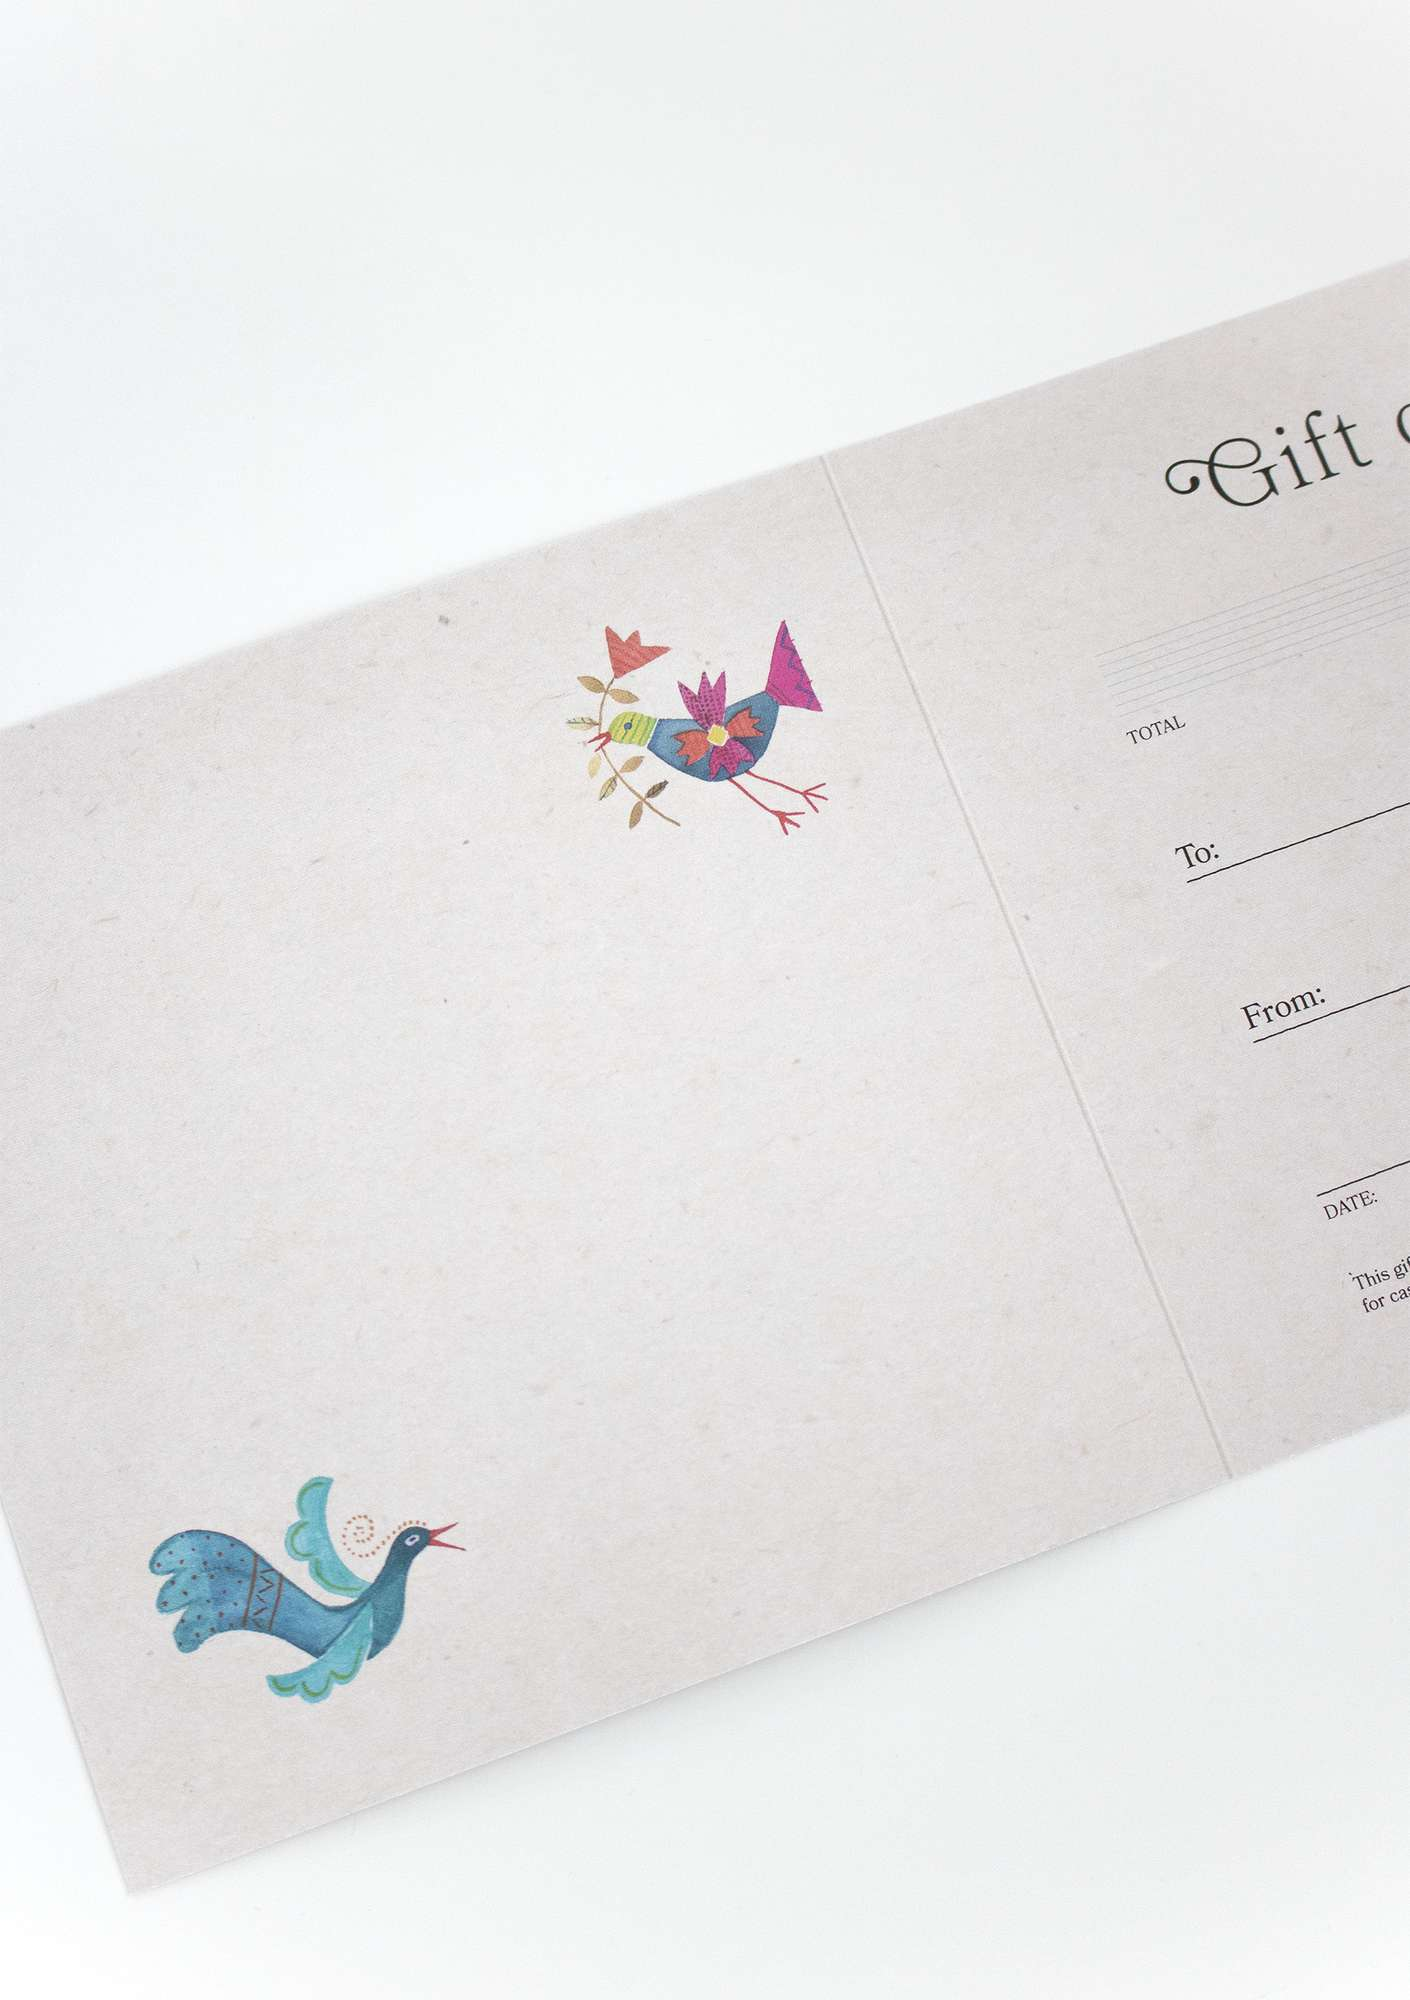 Make things simple with a gift card